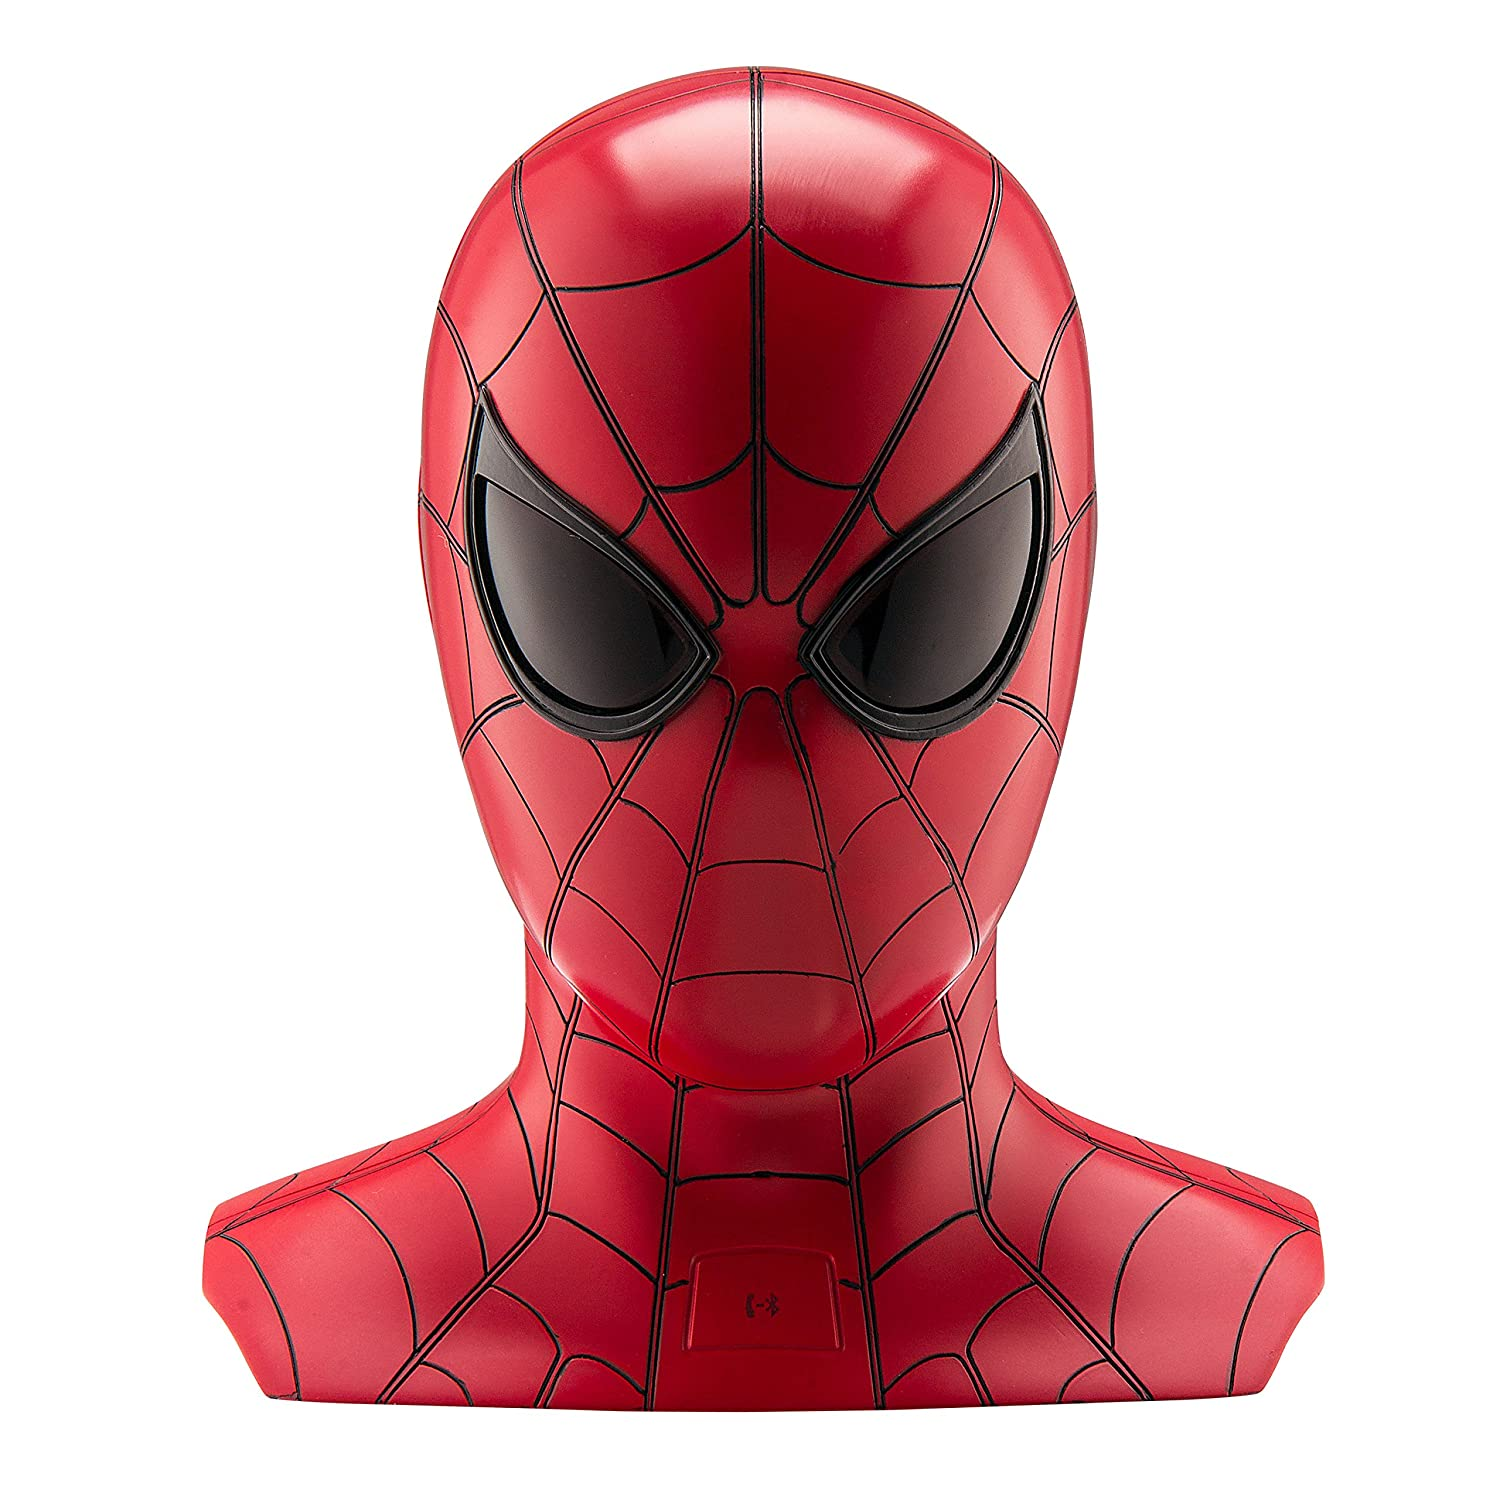 The新しいSpider Manスピーカー – Real Sculpted 1 : 2スケールSpiderman Bluetoothスピーカー、Marvel iHomeスピーカーwith Animated Eyes B0725S4FLQ